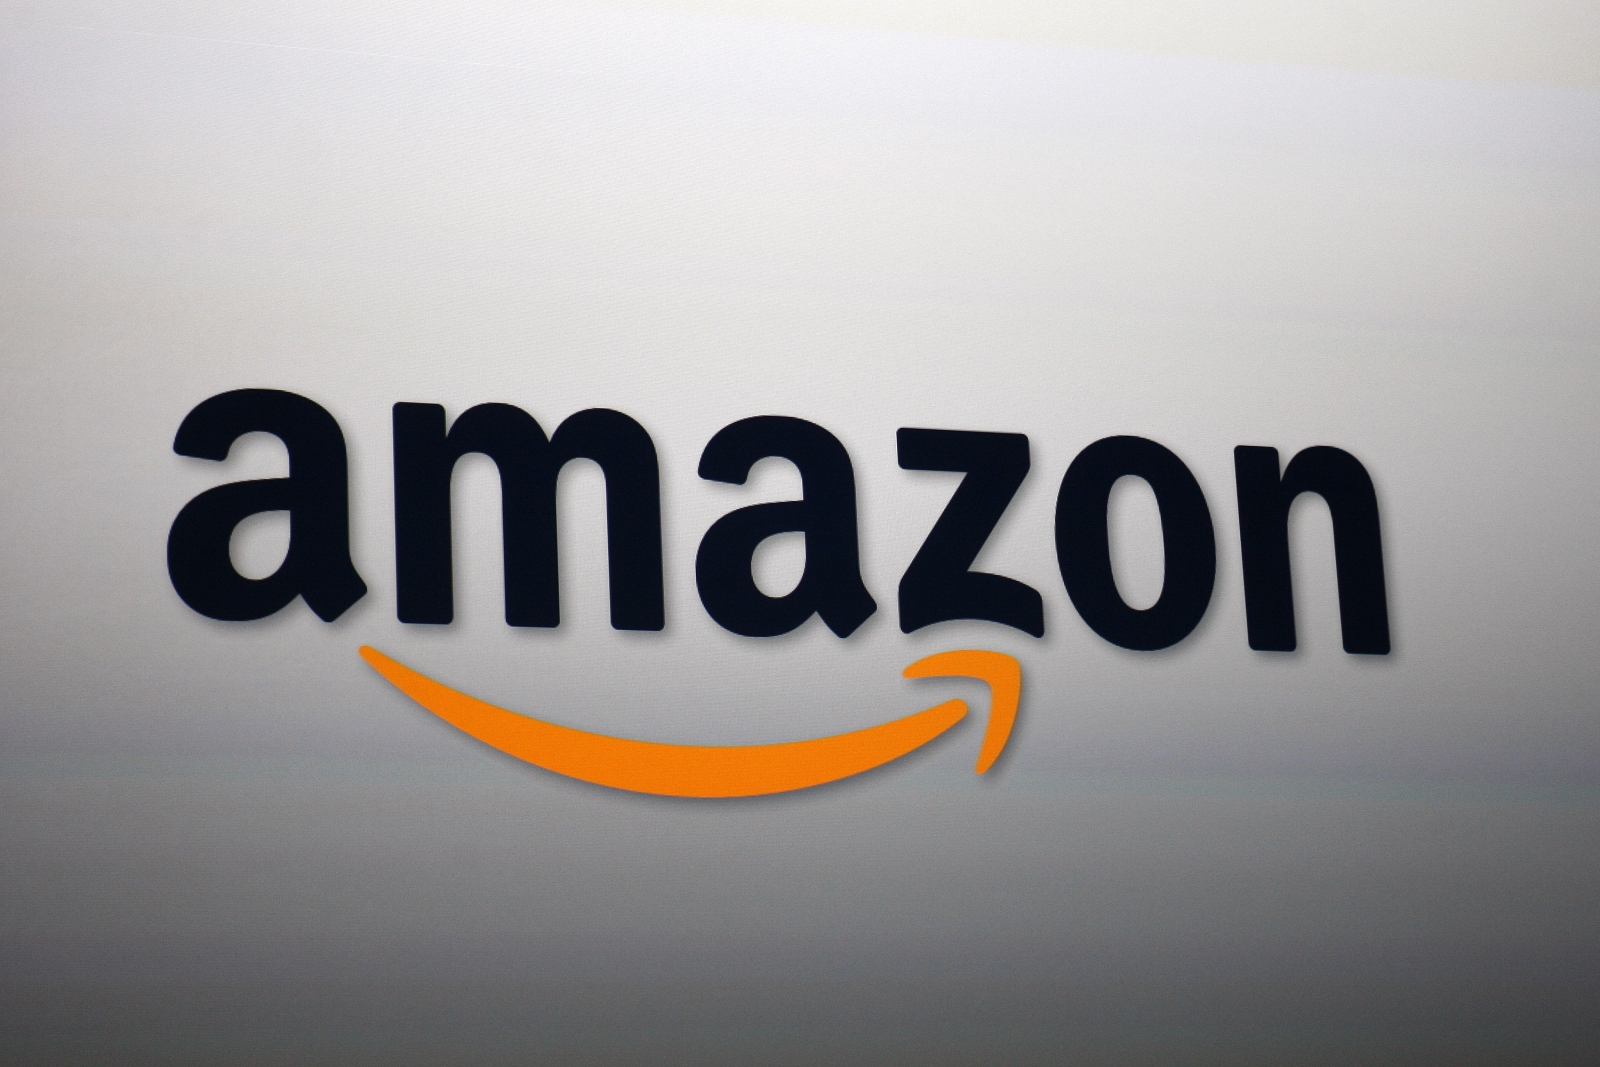 Amazon working on $5 music streaming service